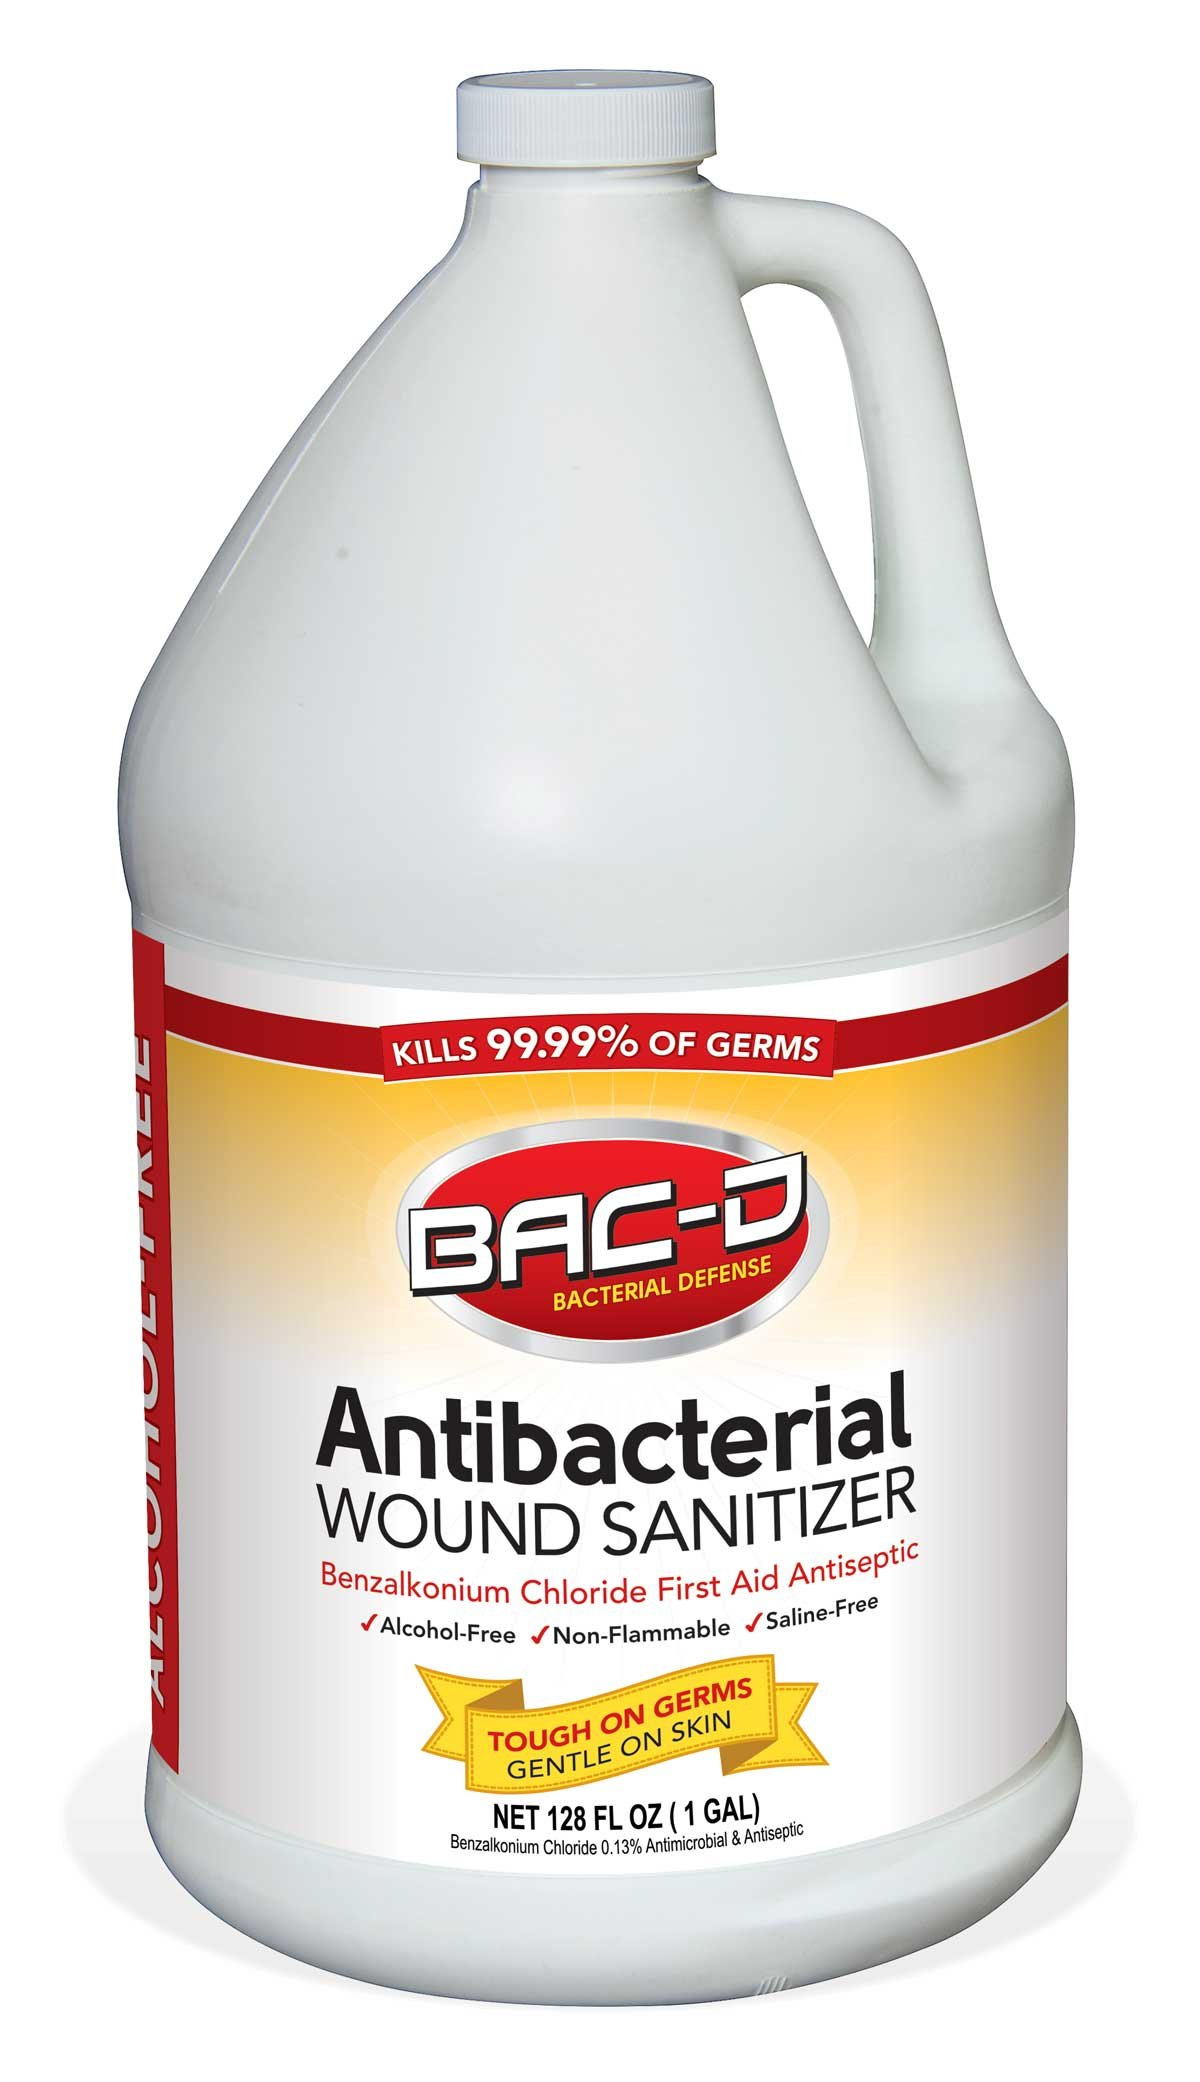 BAC-D 631 Antibacterial Alcohol Free Wound Sanitizer, 1 Gallon Refill, 128 oz. (Pack of 1)